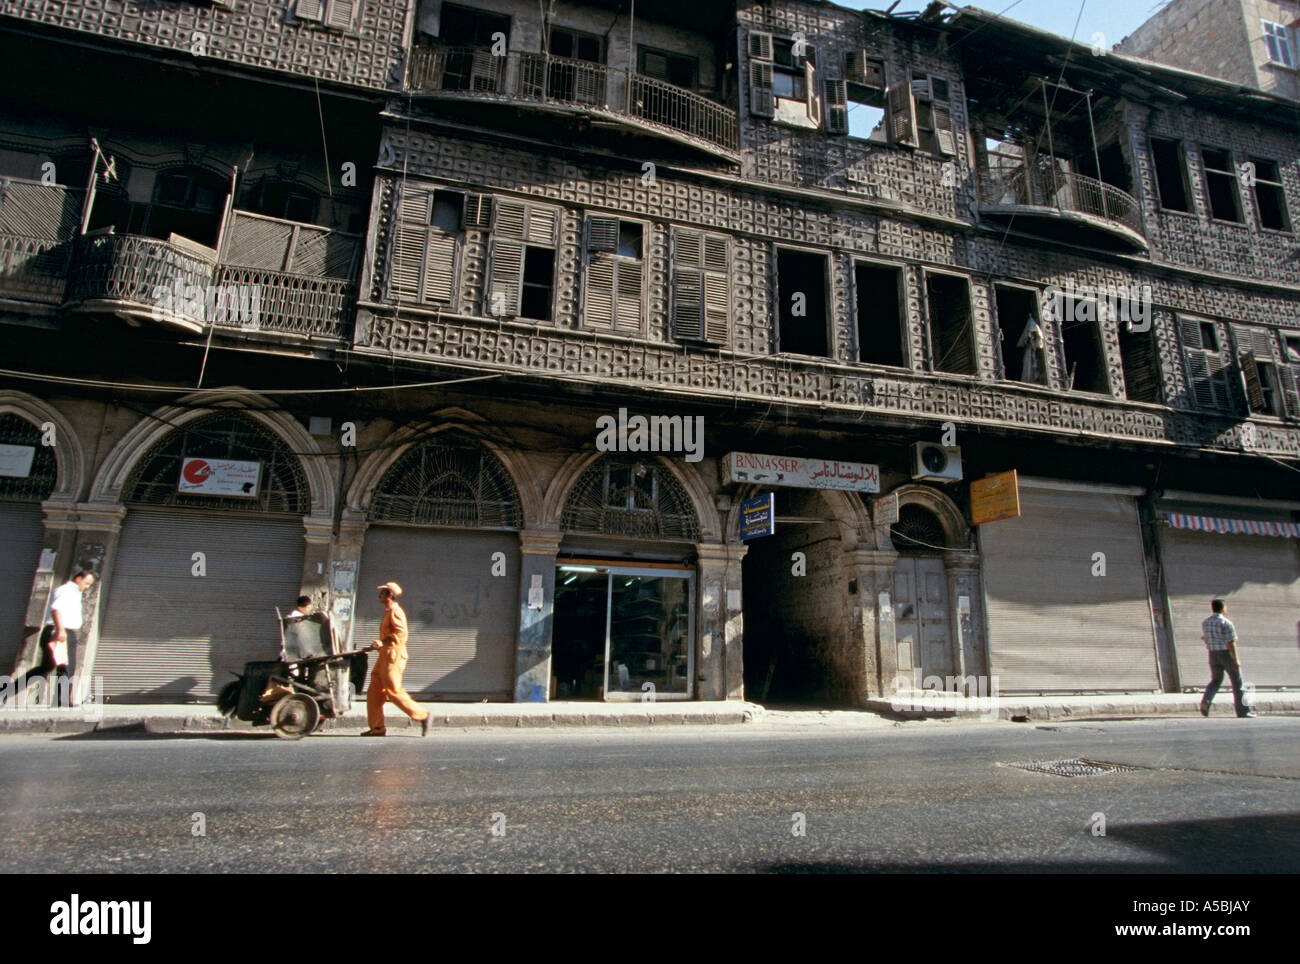 Residential building with shophouses below, Aleppo, Syria Stock Photo